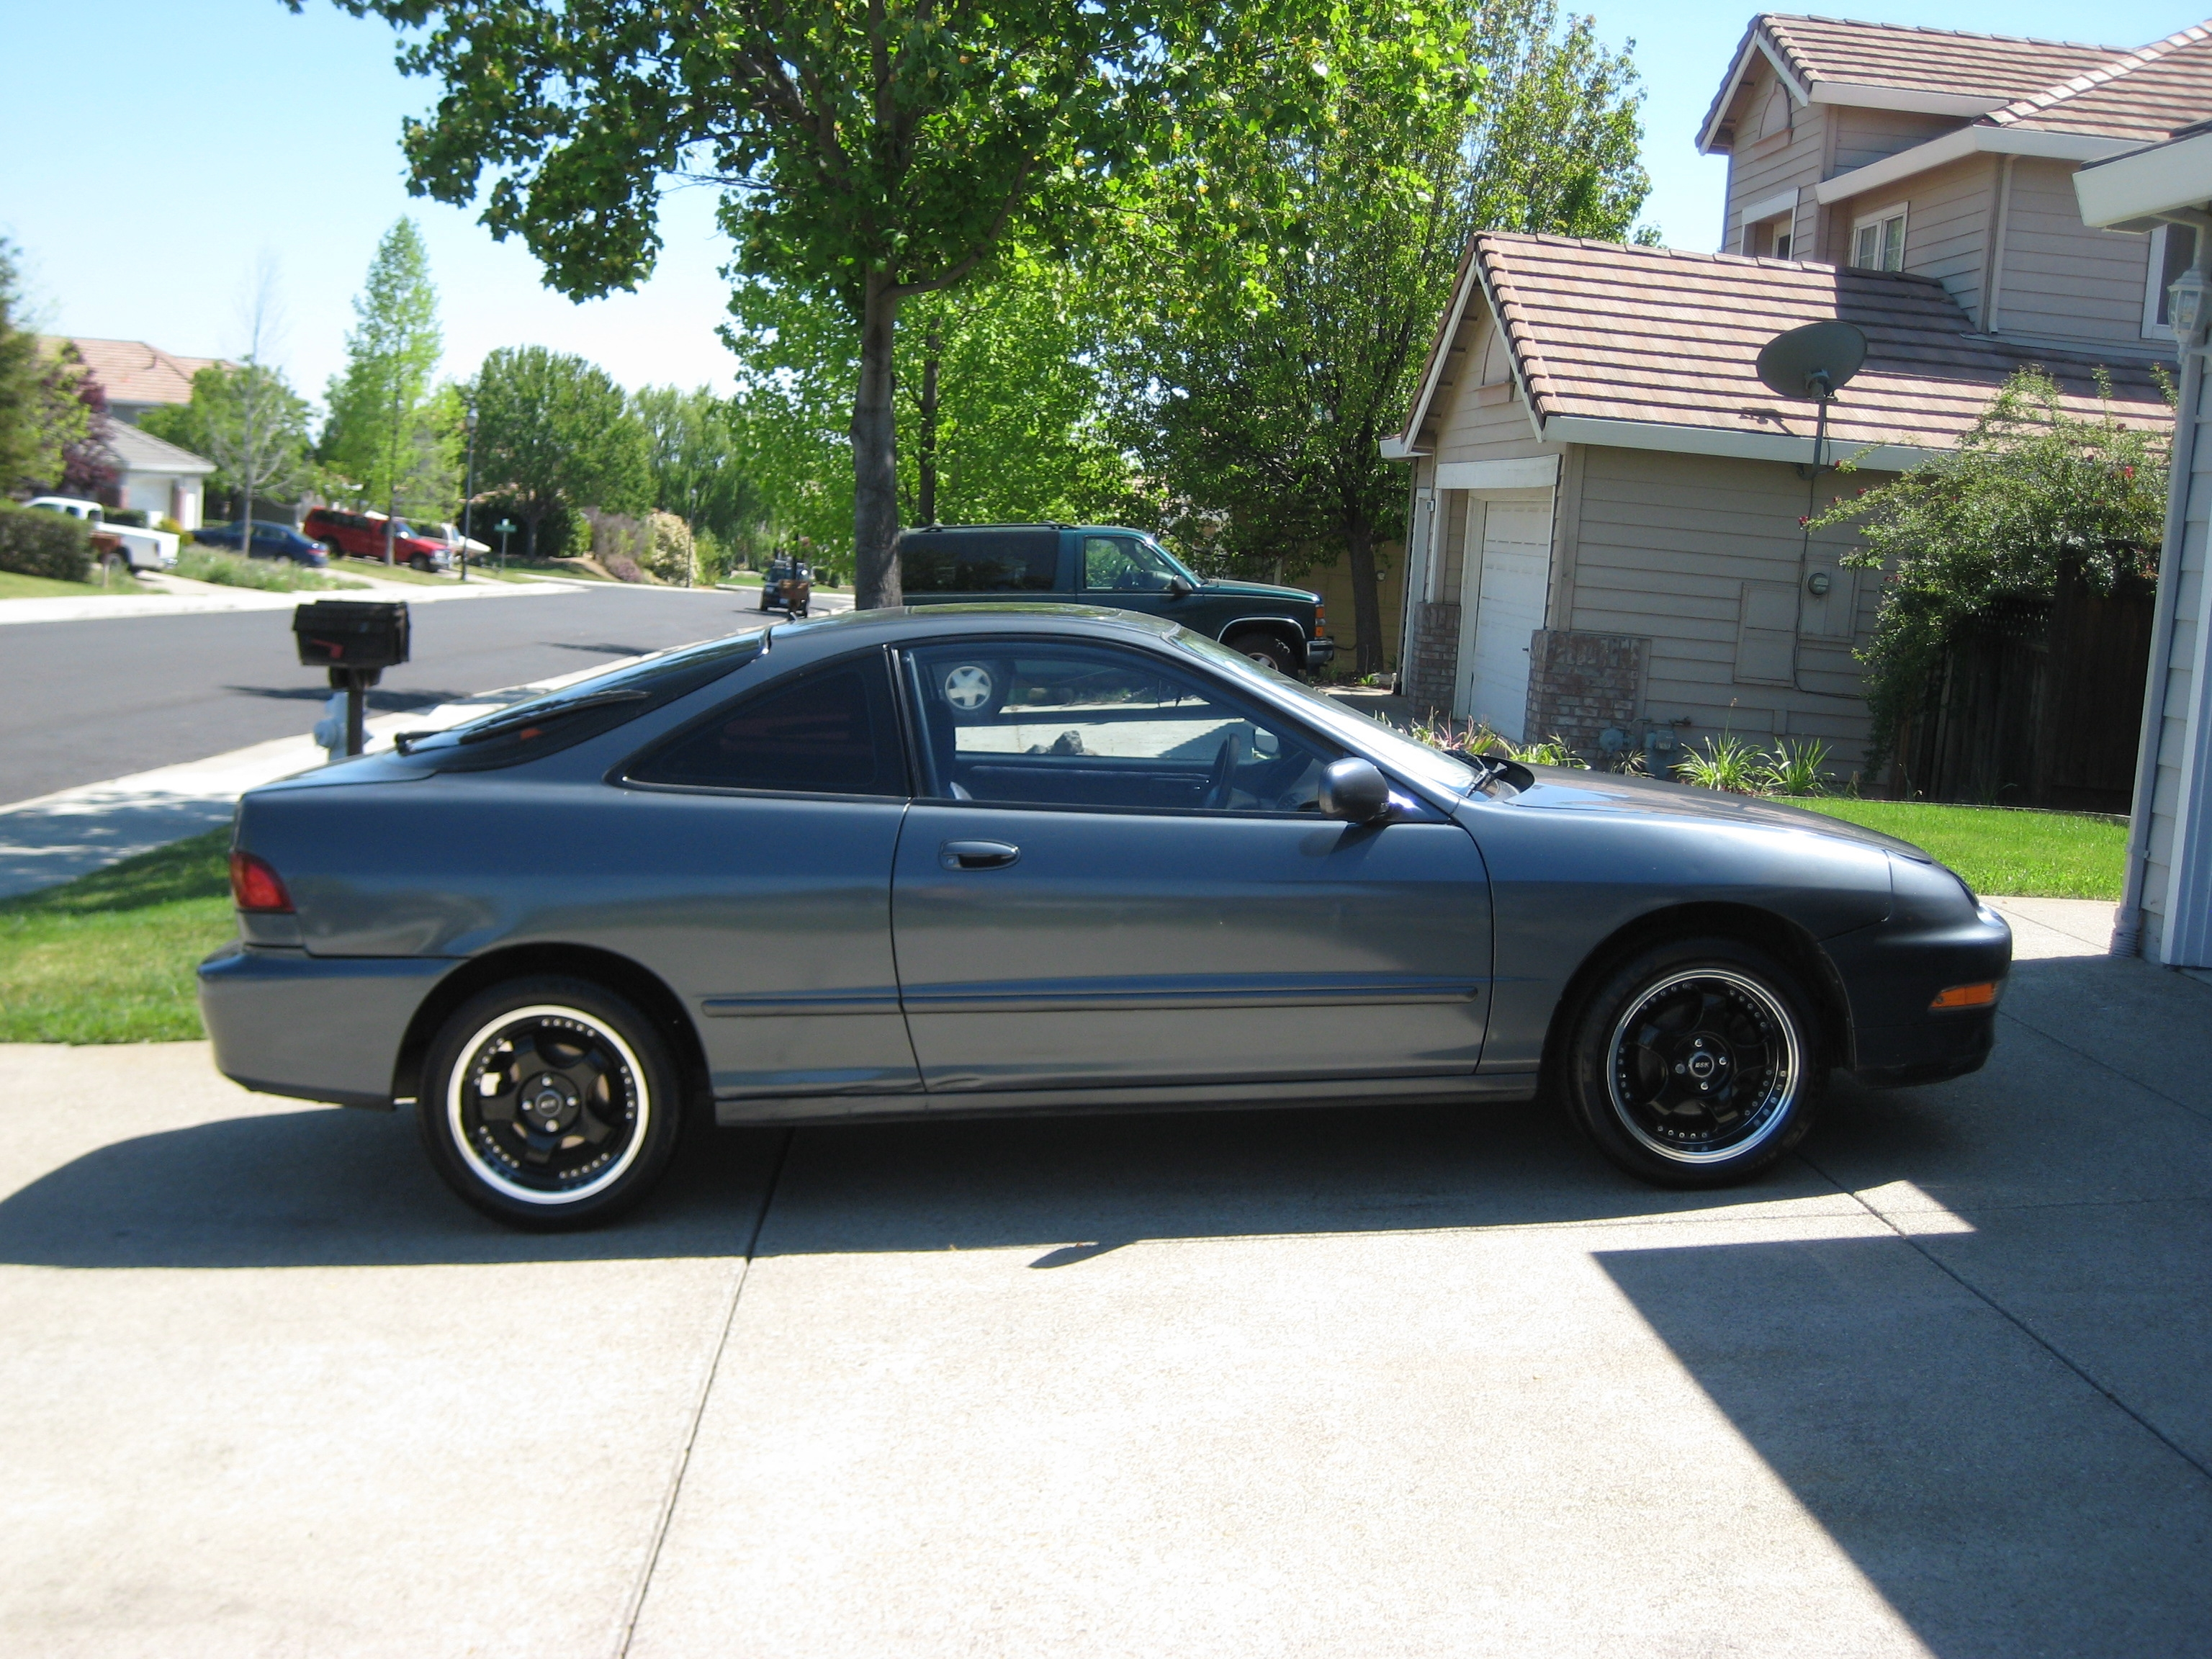 Brandon83604 1994 Acura Integra 14145025